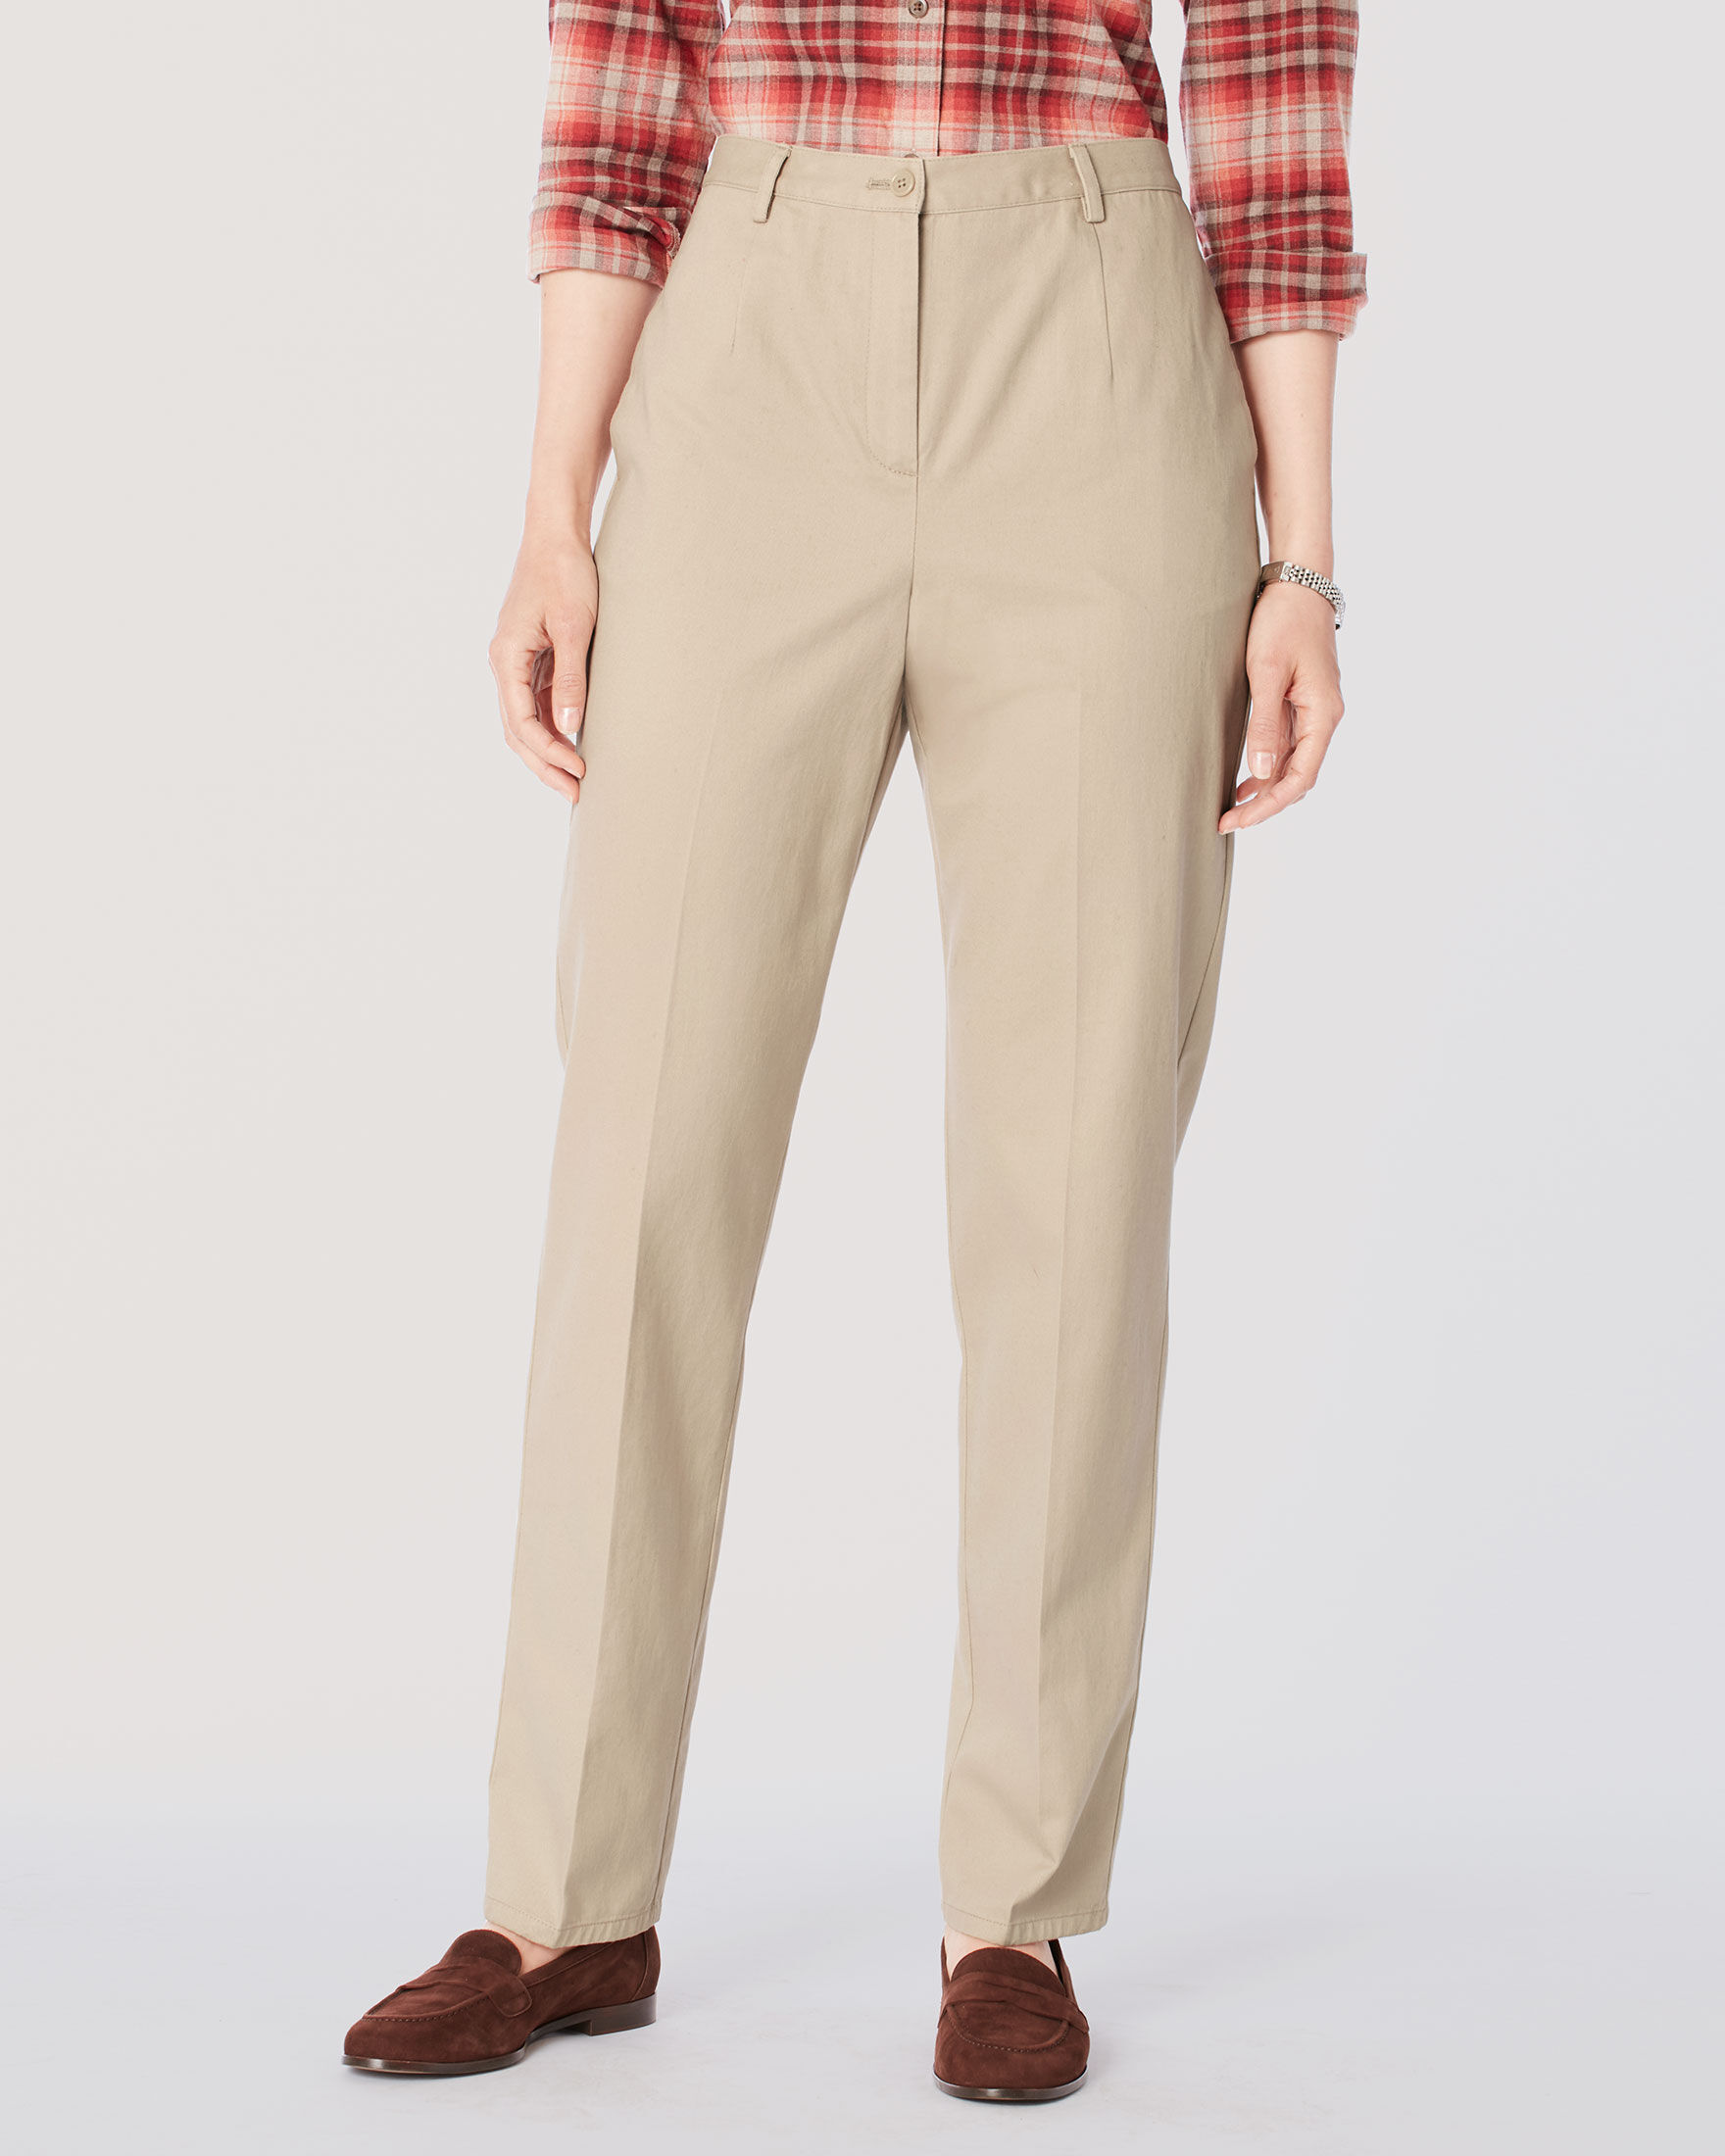 WRINKLE-LESS EVERYDAY CHINOS ...